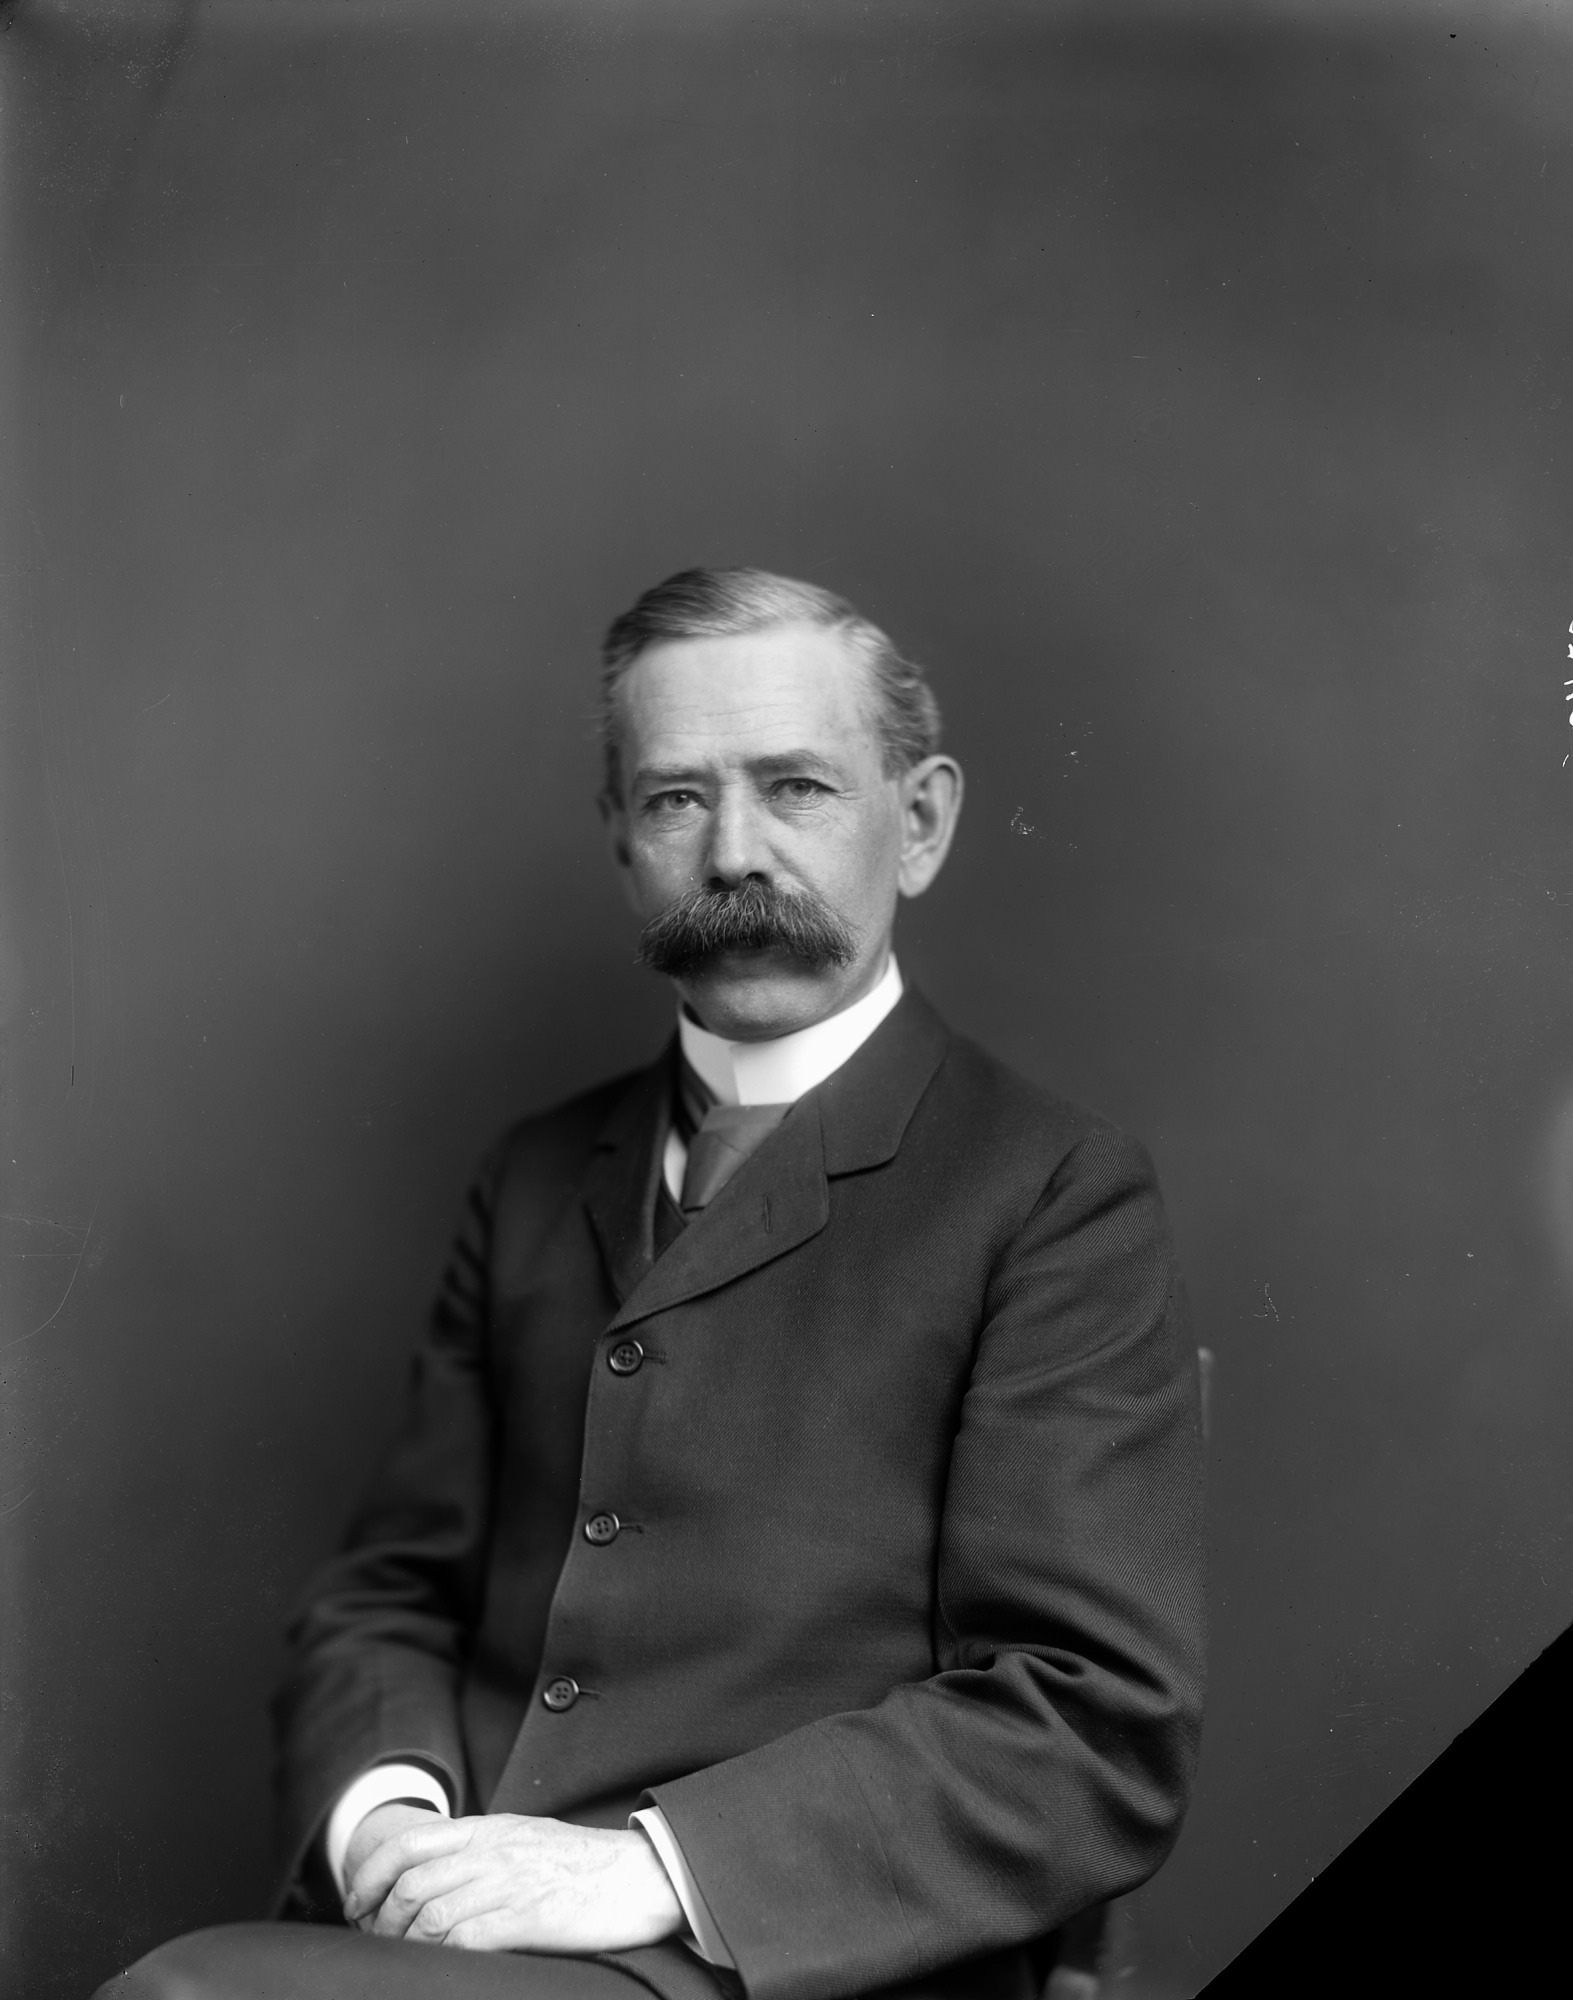 Edgar A. Mearns, by Unknown, c. 1900, Smithsonian Archives - History Div, 21452 or NHB-21452.